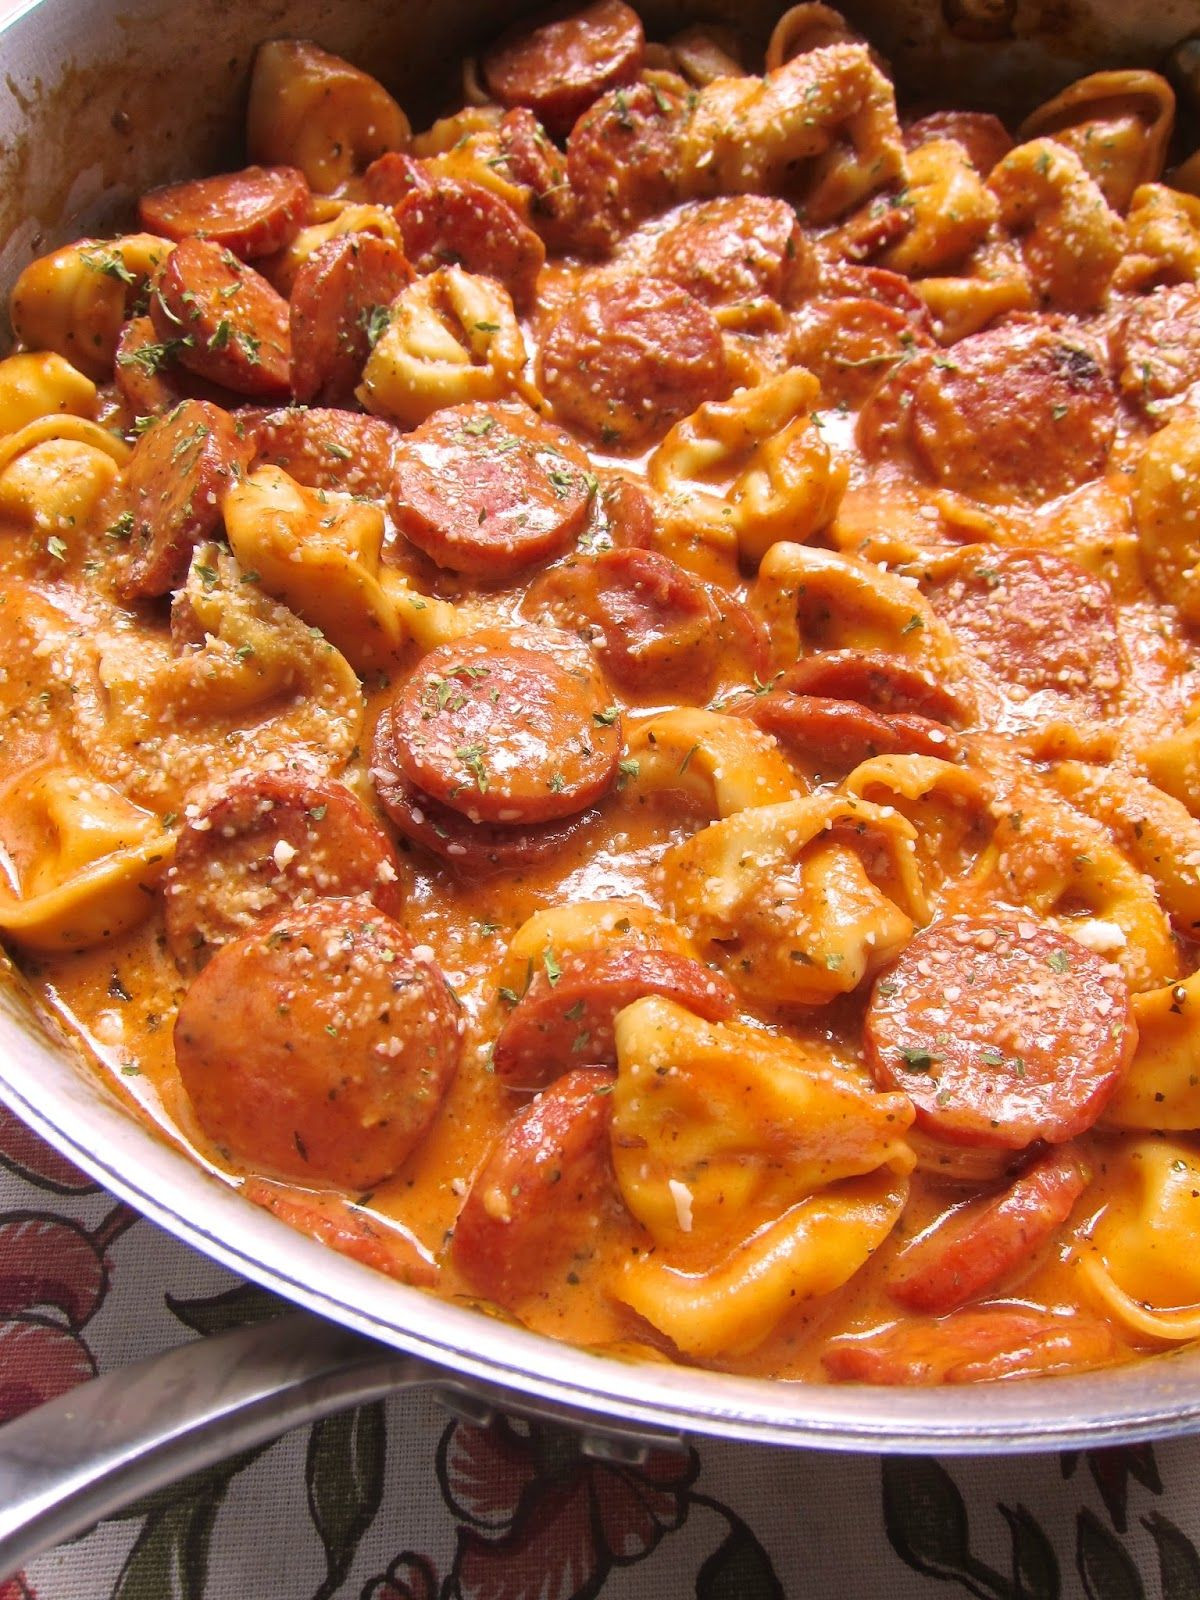 Sausage Dinner Ideas  Best 25 Sausage recipes for dinner ideas on Pinterest